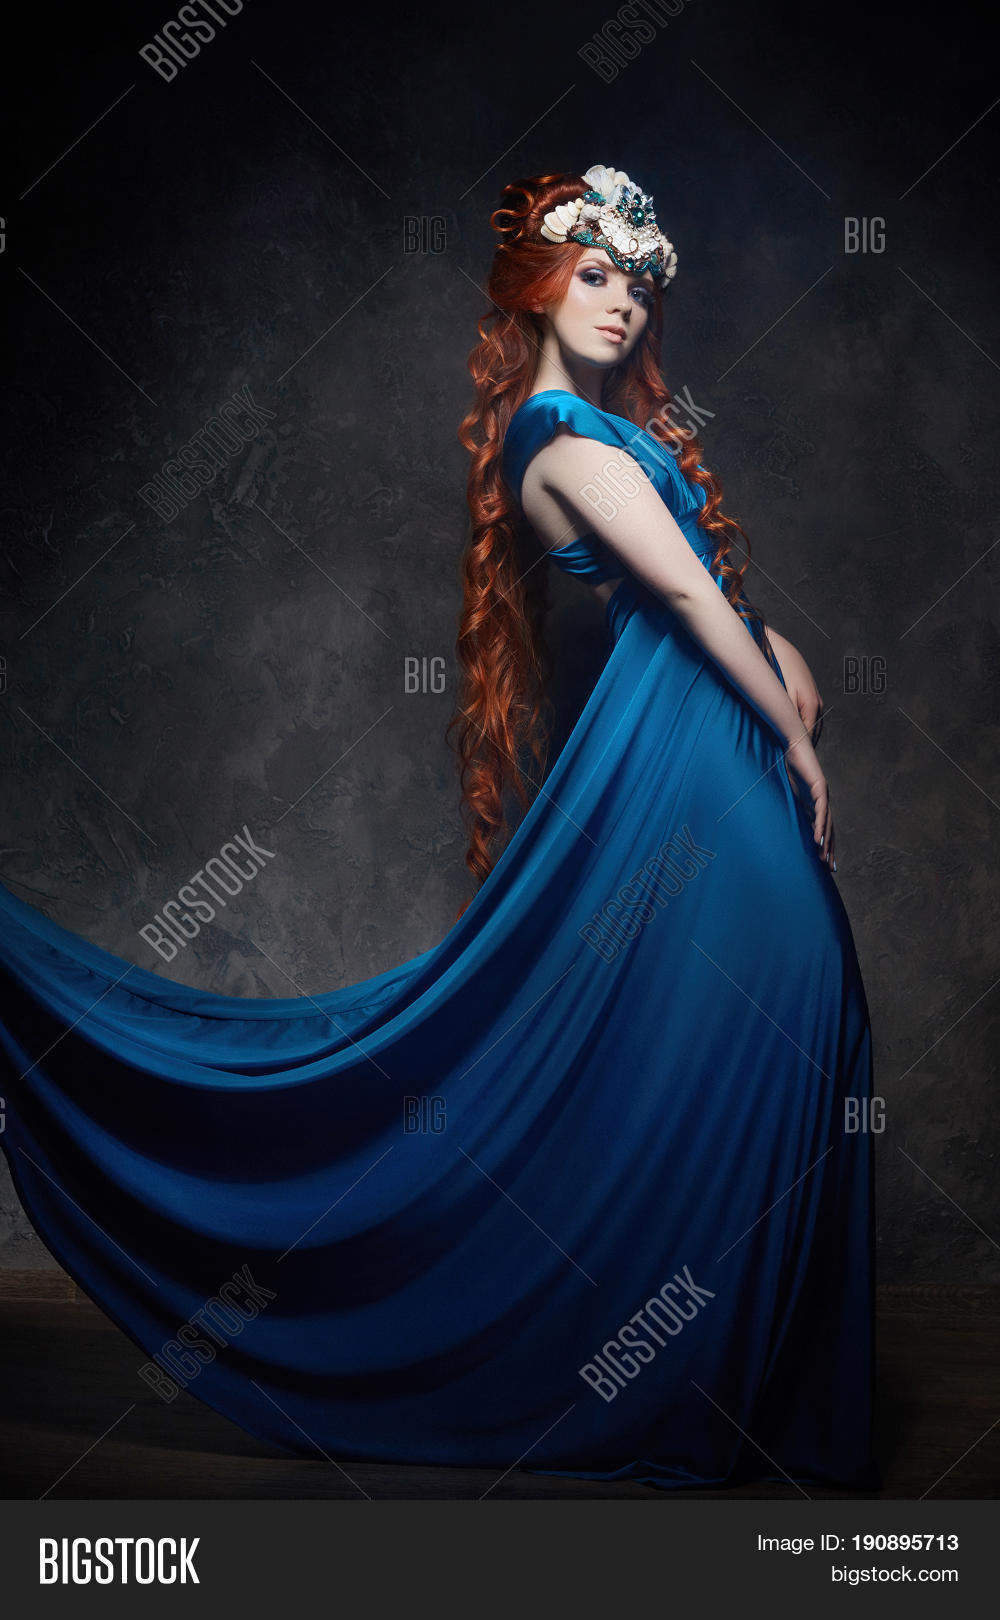 67a7745f897 Redhead girl fabulous look blue long dress bright makeup and big eyelashes. Mysterious  fairy woman